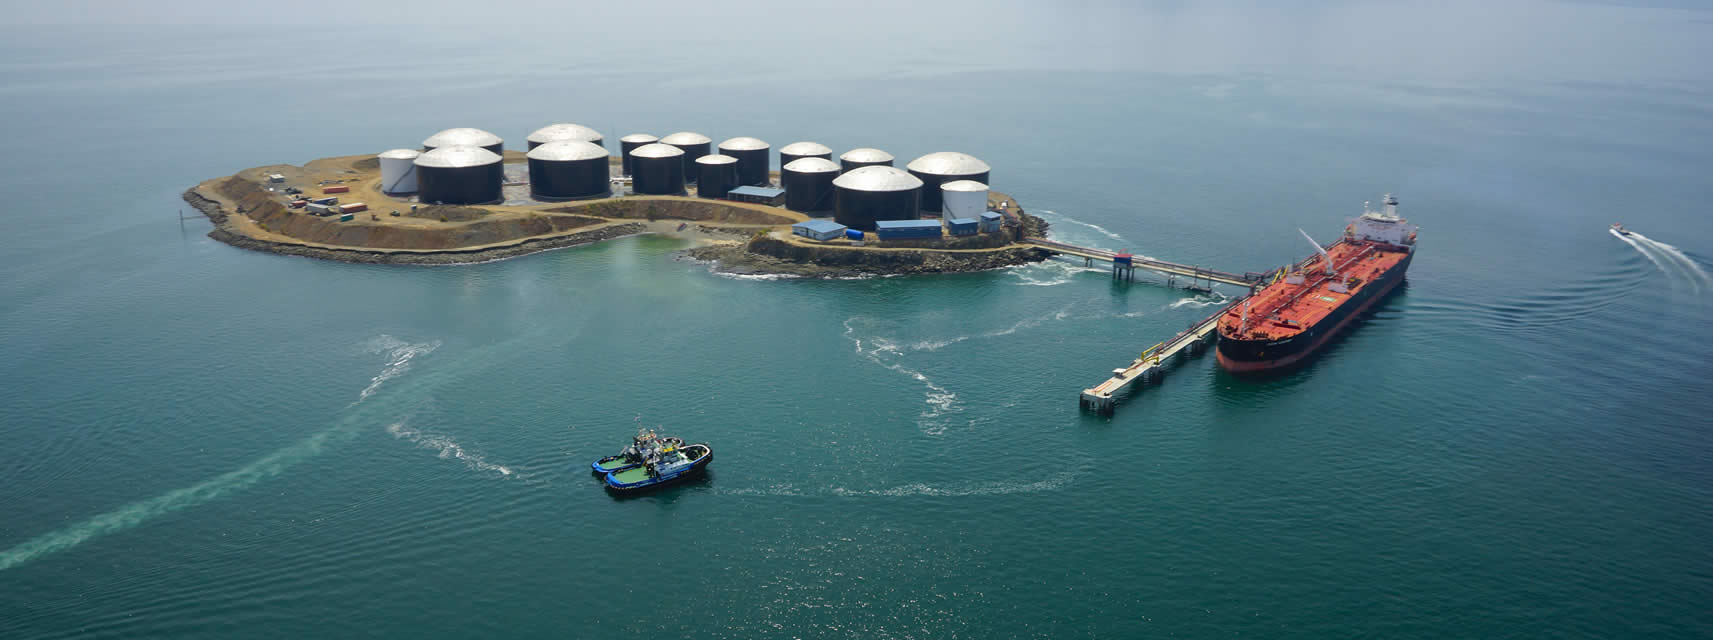 Melones+Terminal-EPFCC+Engineering,+Construction+and+Corrosion+protection+of+two+million+barrels+of+fuel+storage